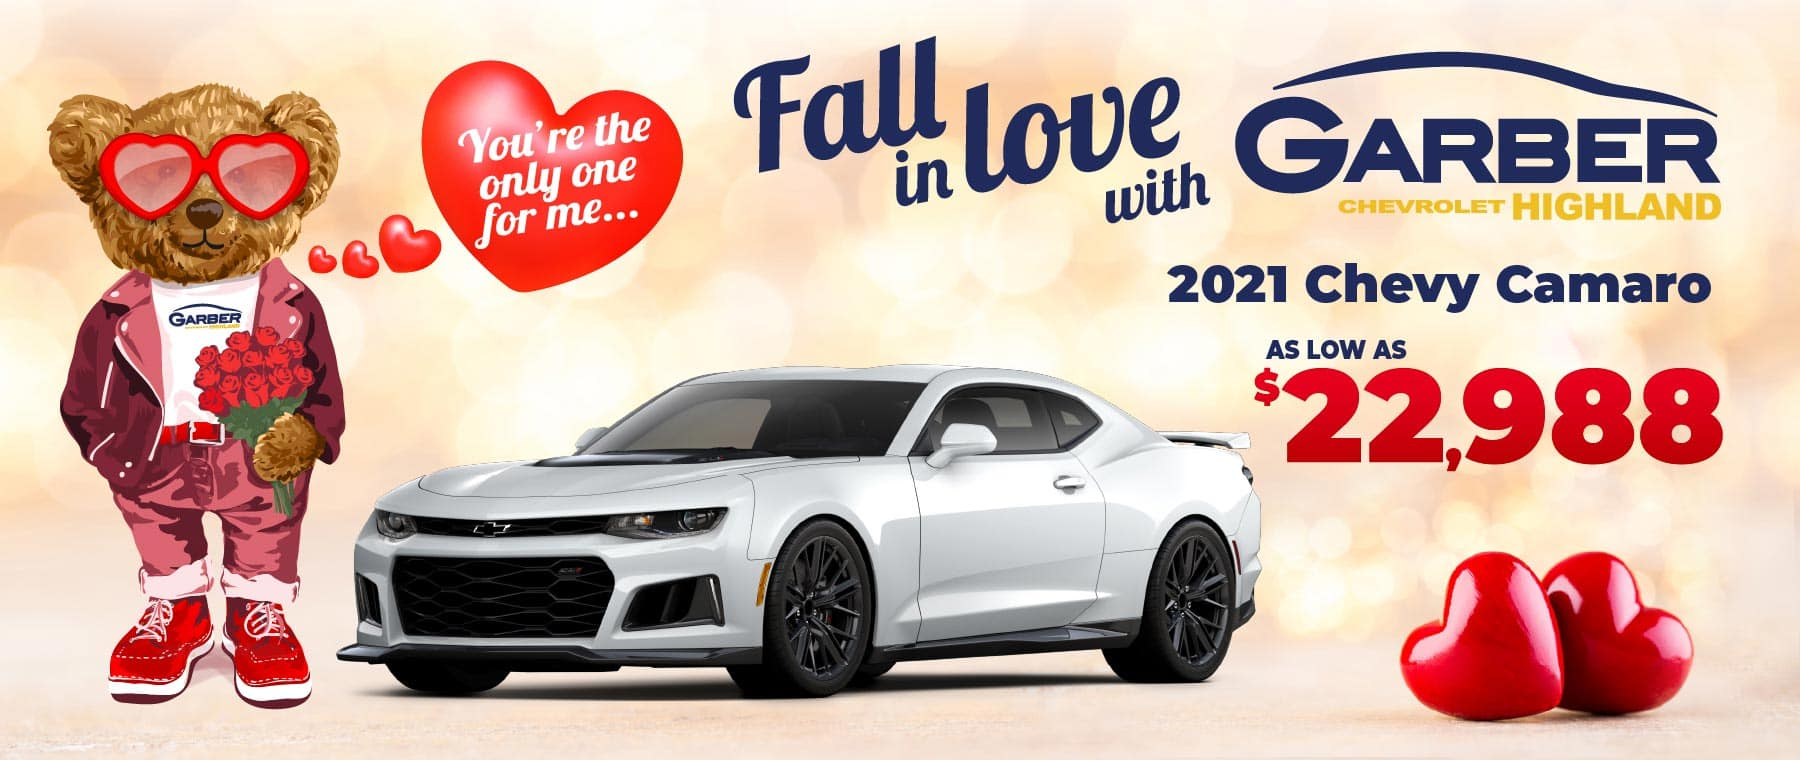 2021 Chevy Camaro - as low as $22,988